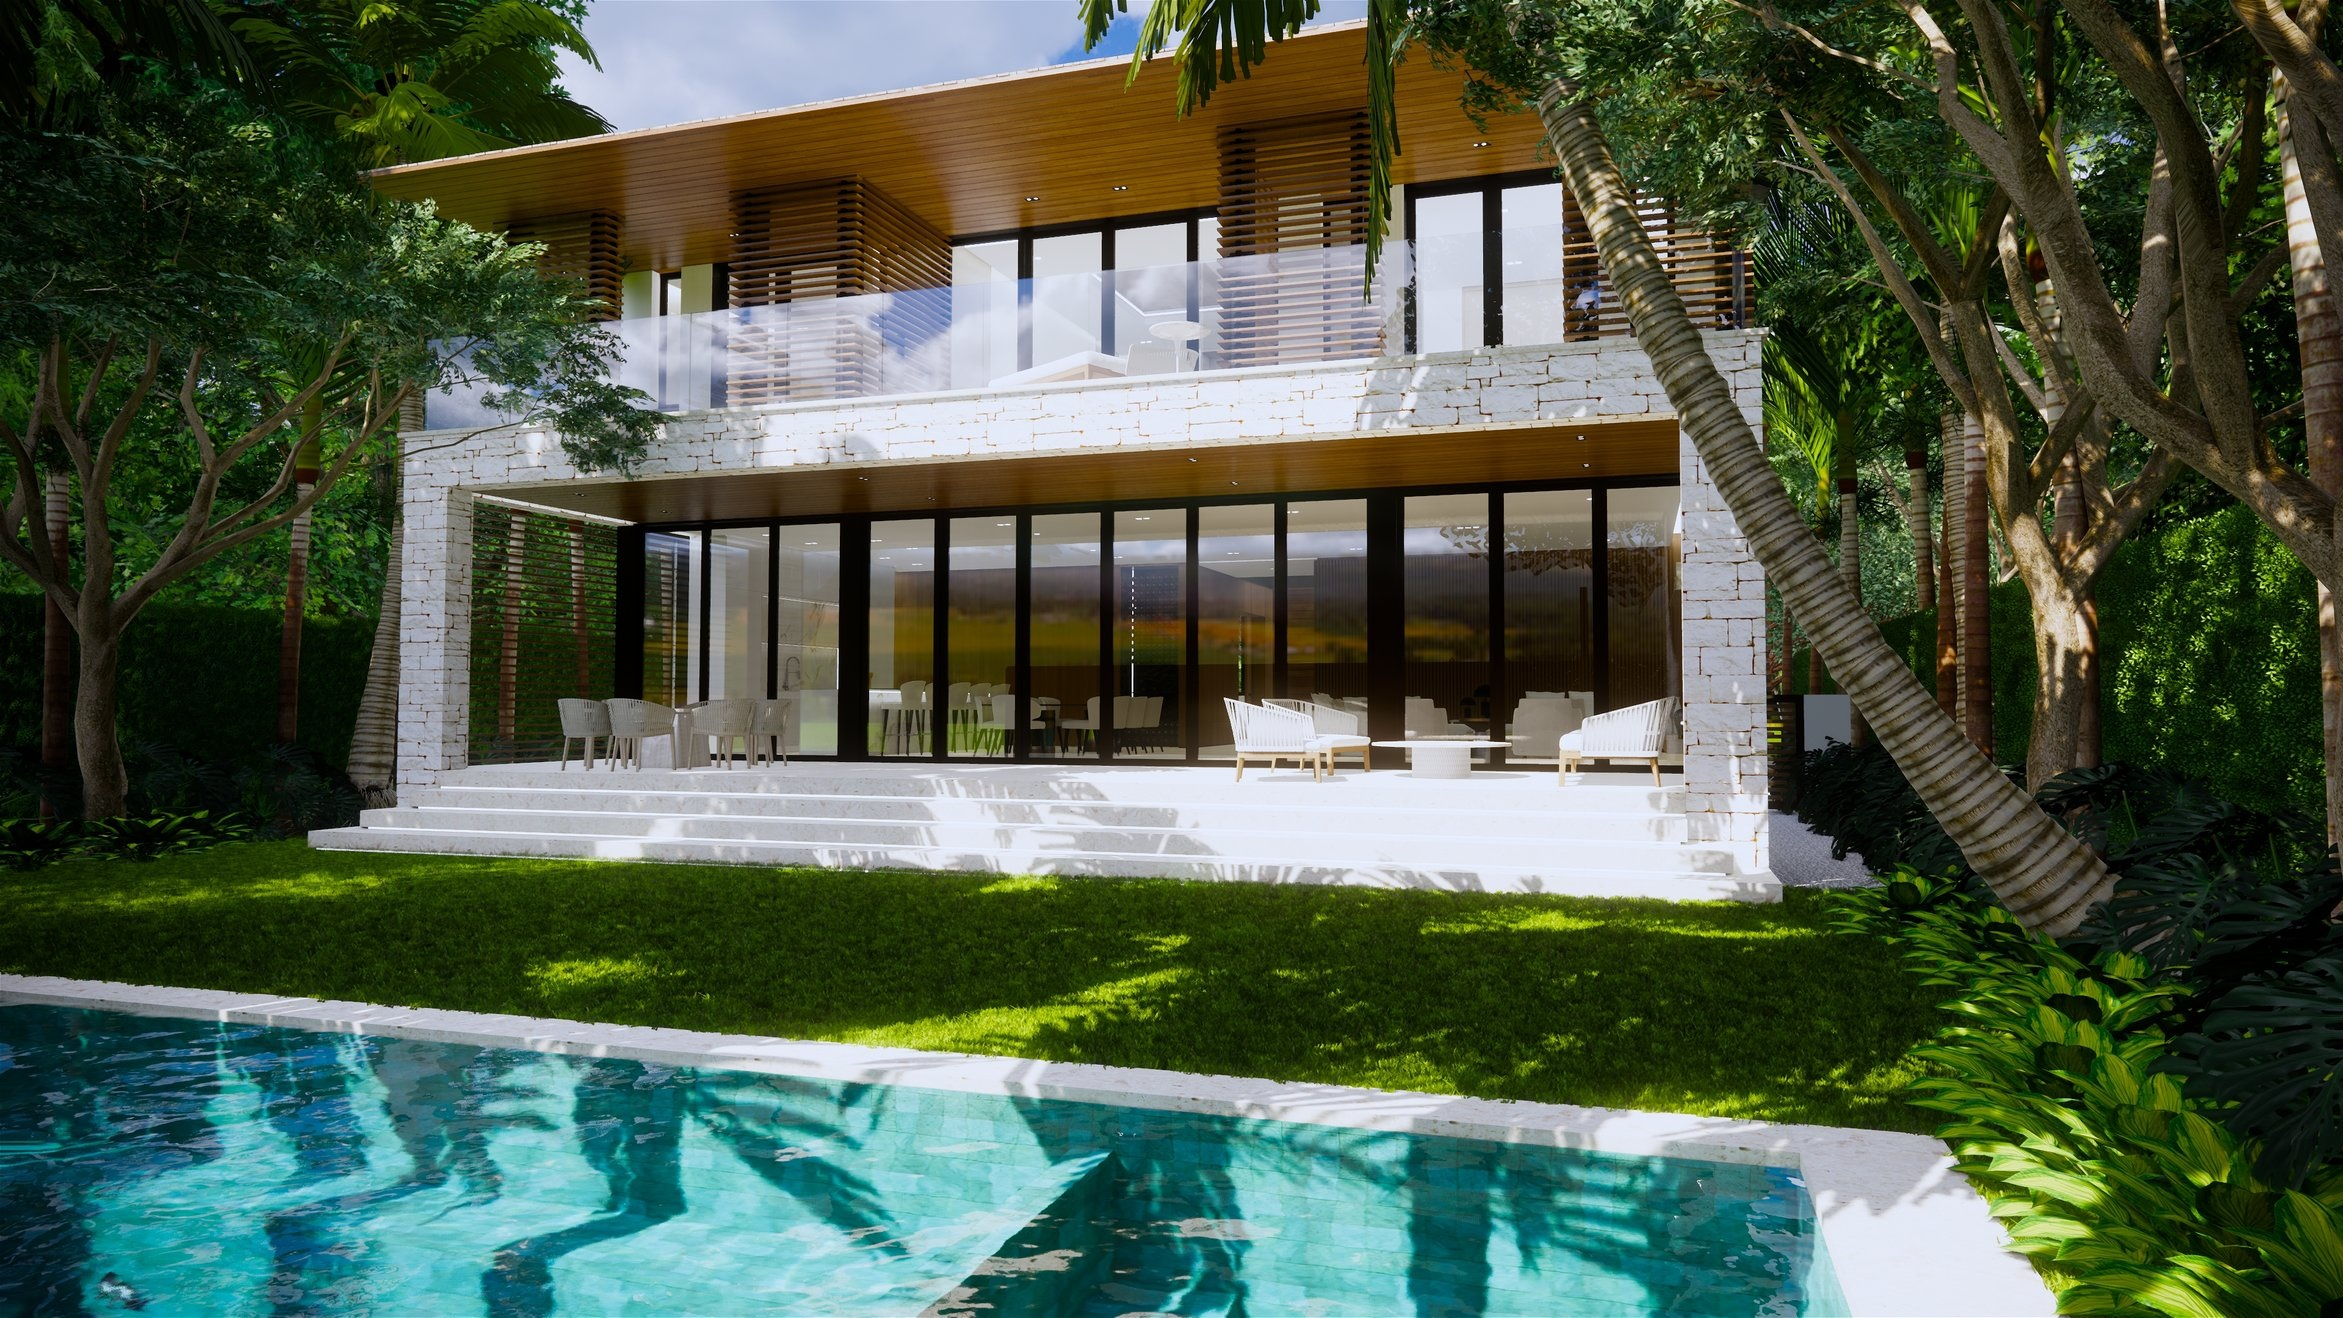 NORTH BAY ROAD RESIDENCE - CLICK HERE FOR MORE INFORMATION